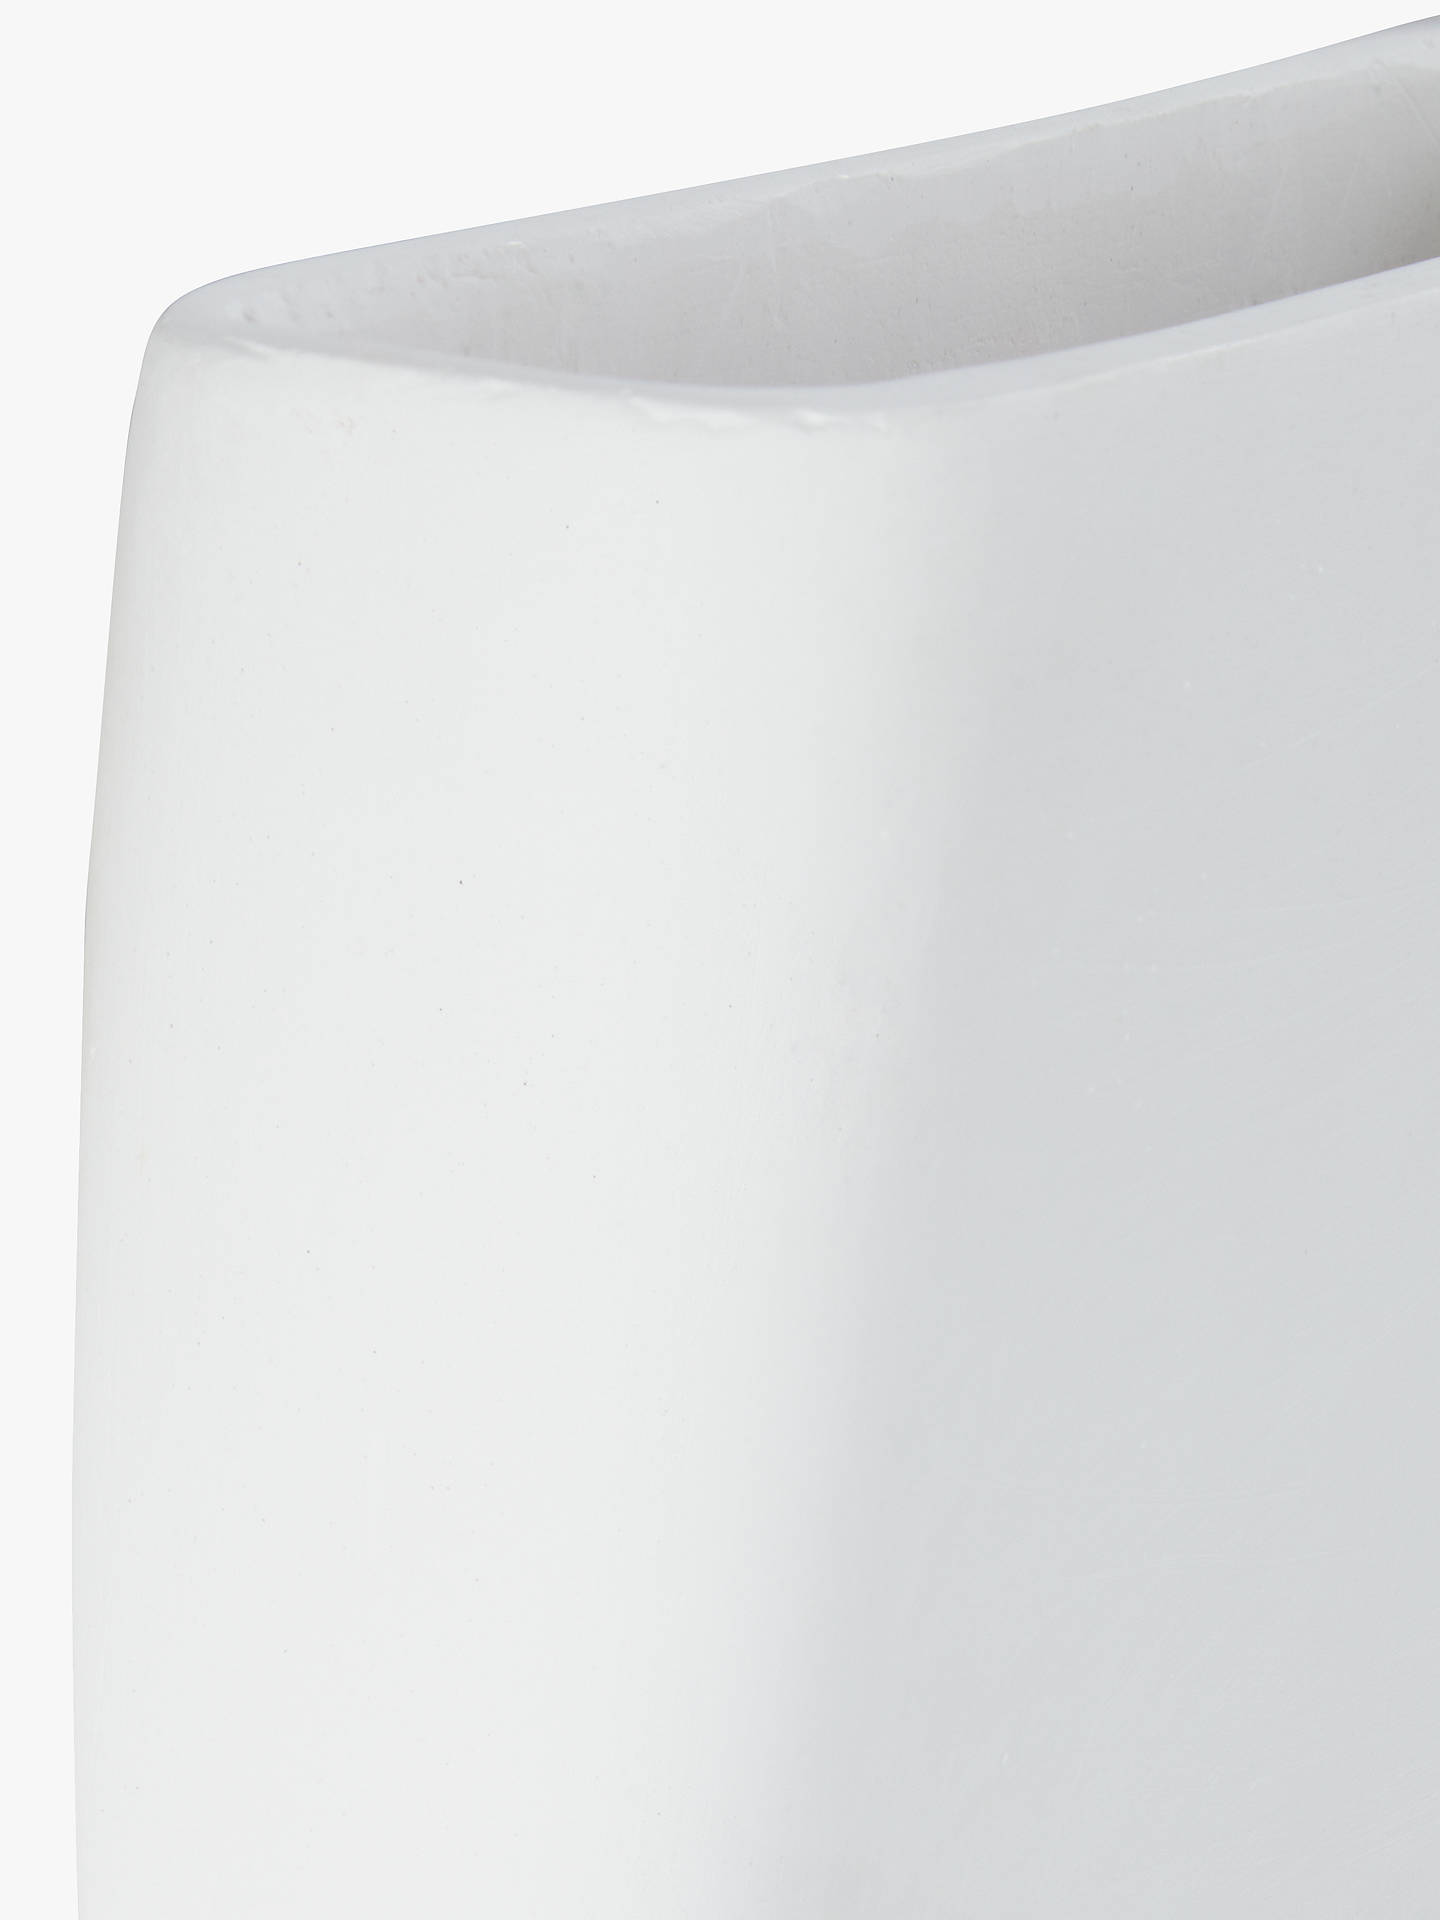 BuyJohn Lewis & Partners Linton LED Wall Light, White Online at johnlewis.com